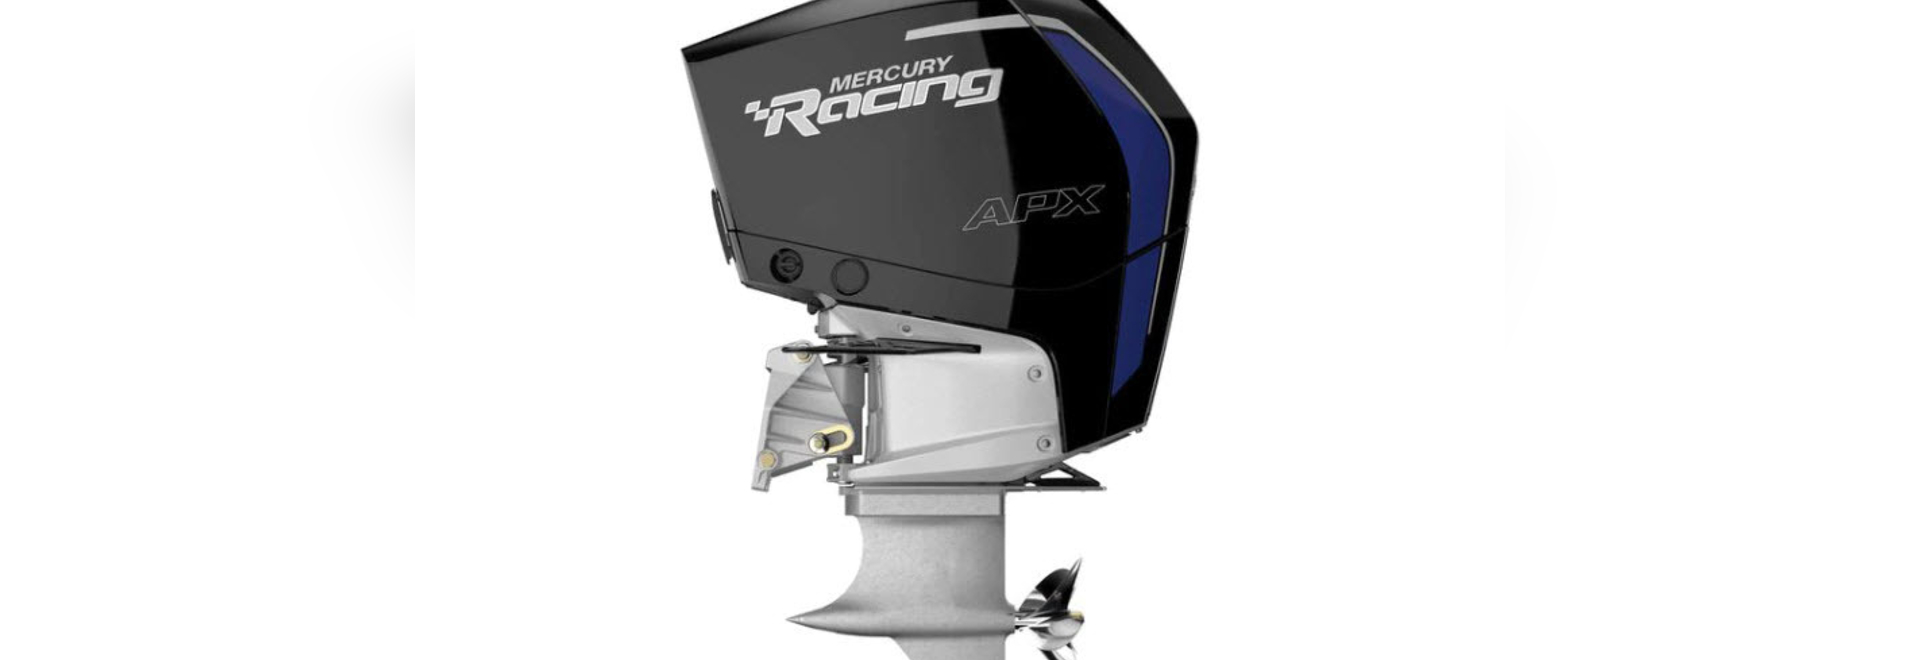 A specialized gearcase and midsection help make this a racing competition outboard.